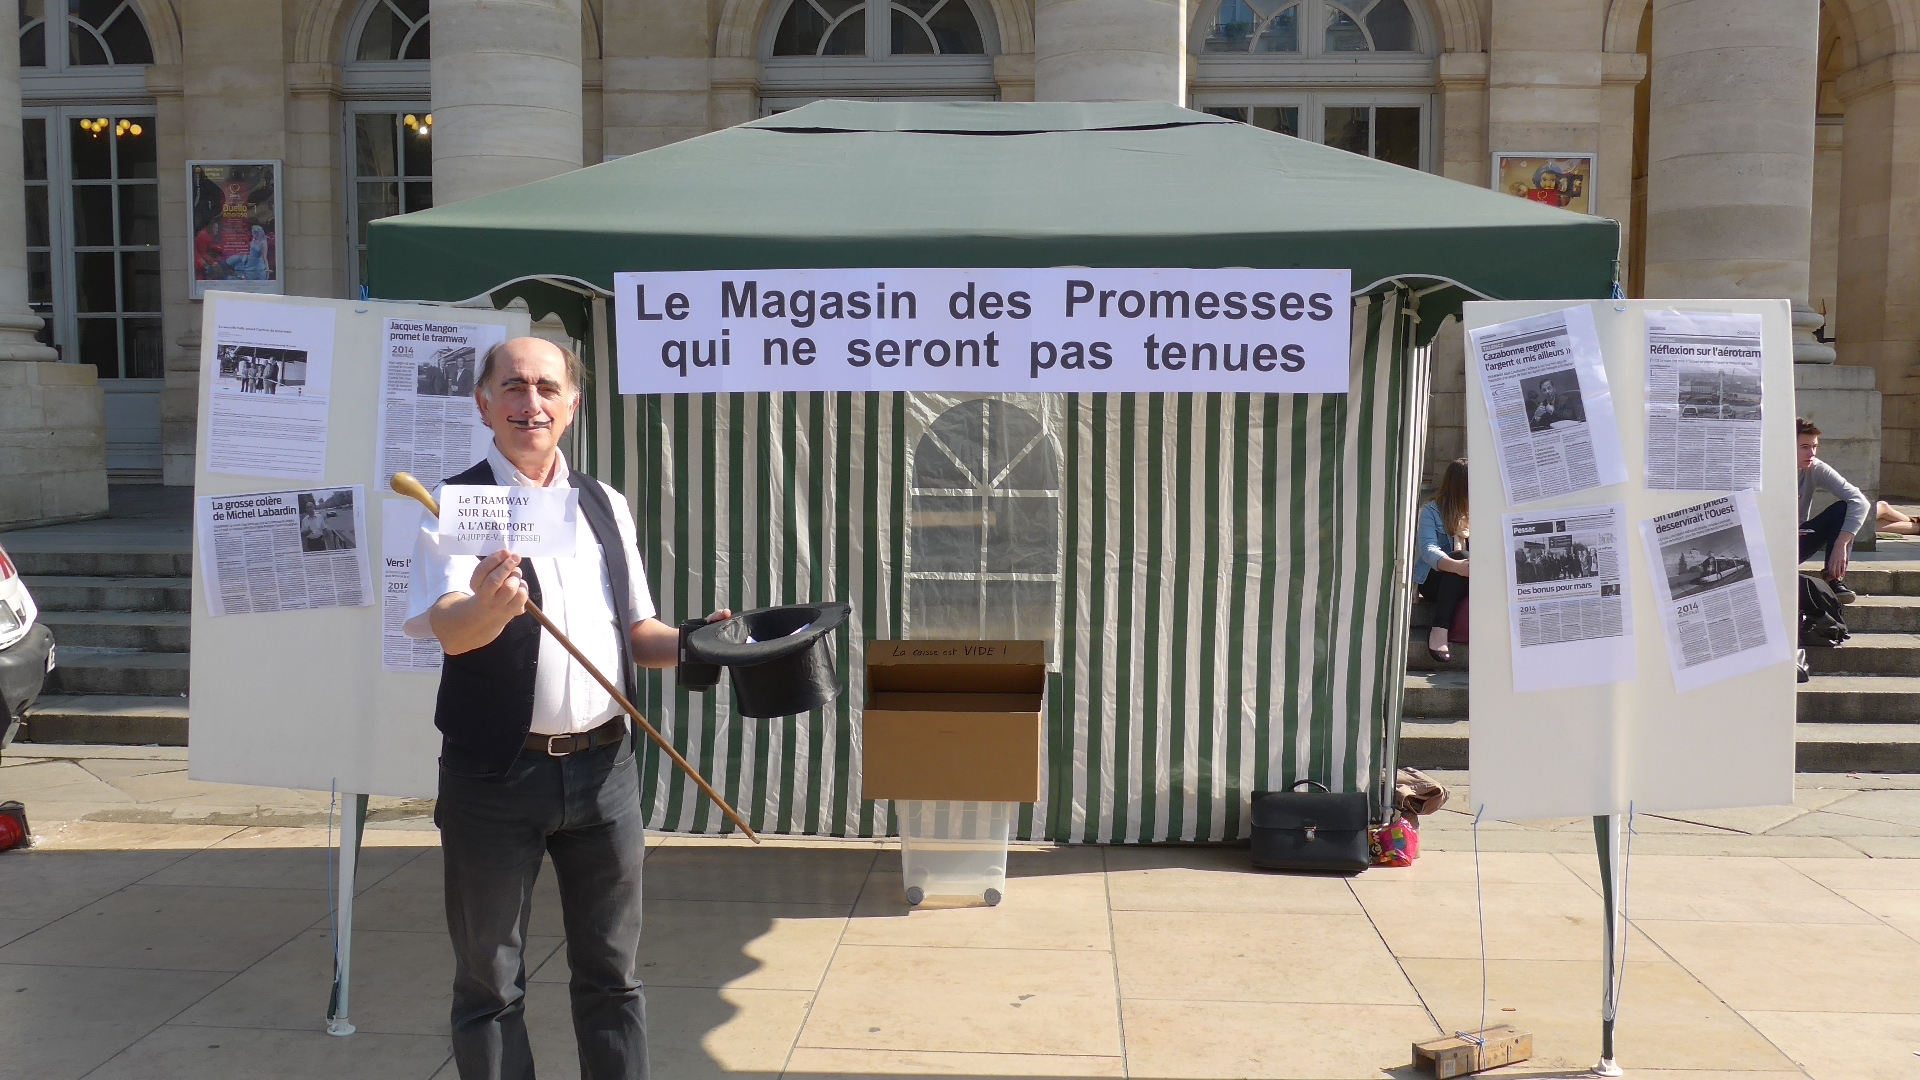 magasin des promesses